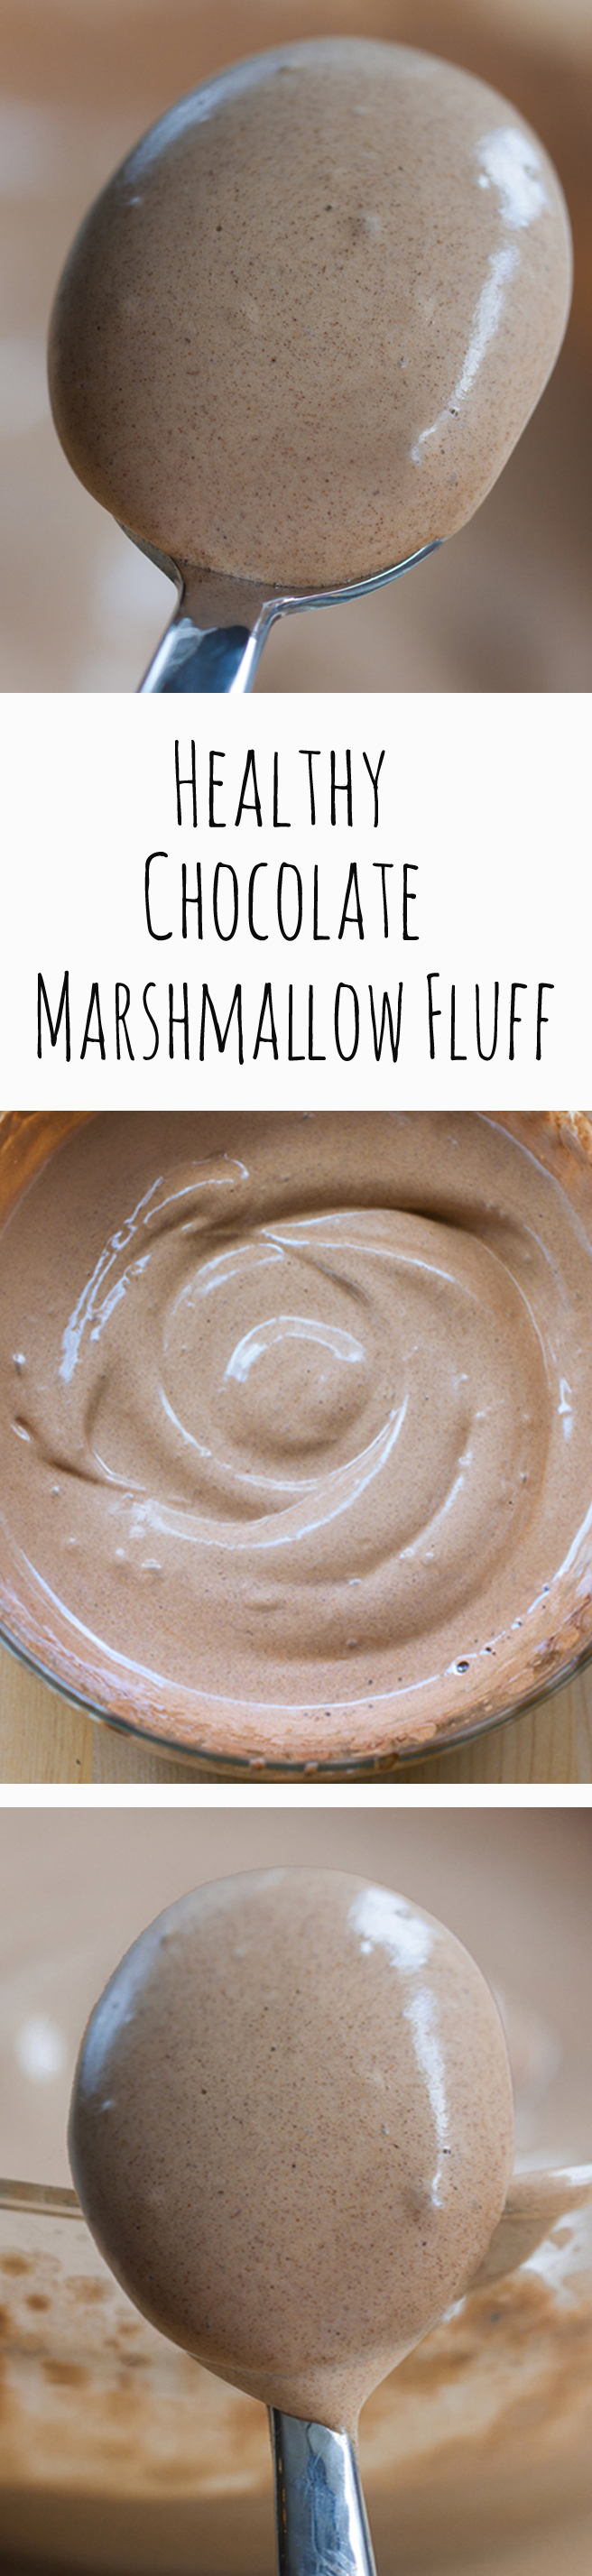 No corn syrup, no powdered sugar, no raw eggs... You will NEVER believe the ingredients that make this! ... Full recipe: https://chocolatecoveredkatie.com/2015/04/30/healthy-vegan-marshmallow-fluff/ @choccoveredkt